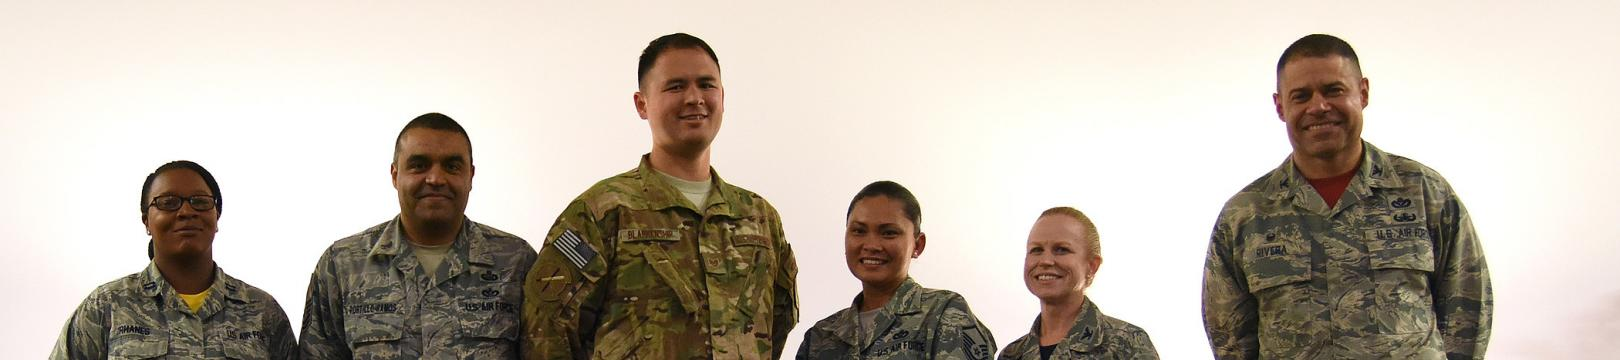 Military Personnel Standing Together